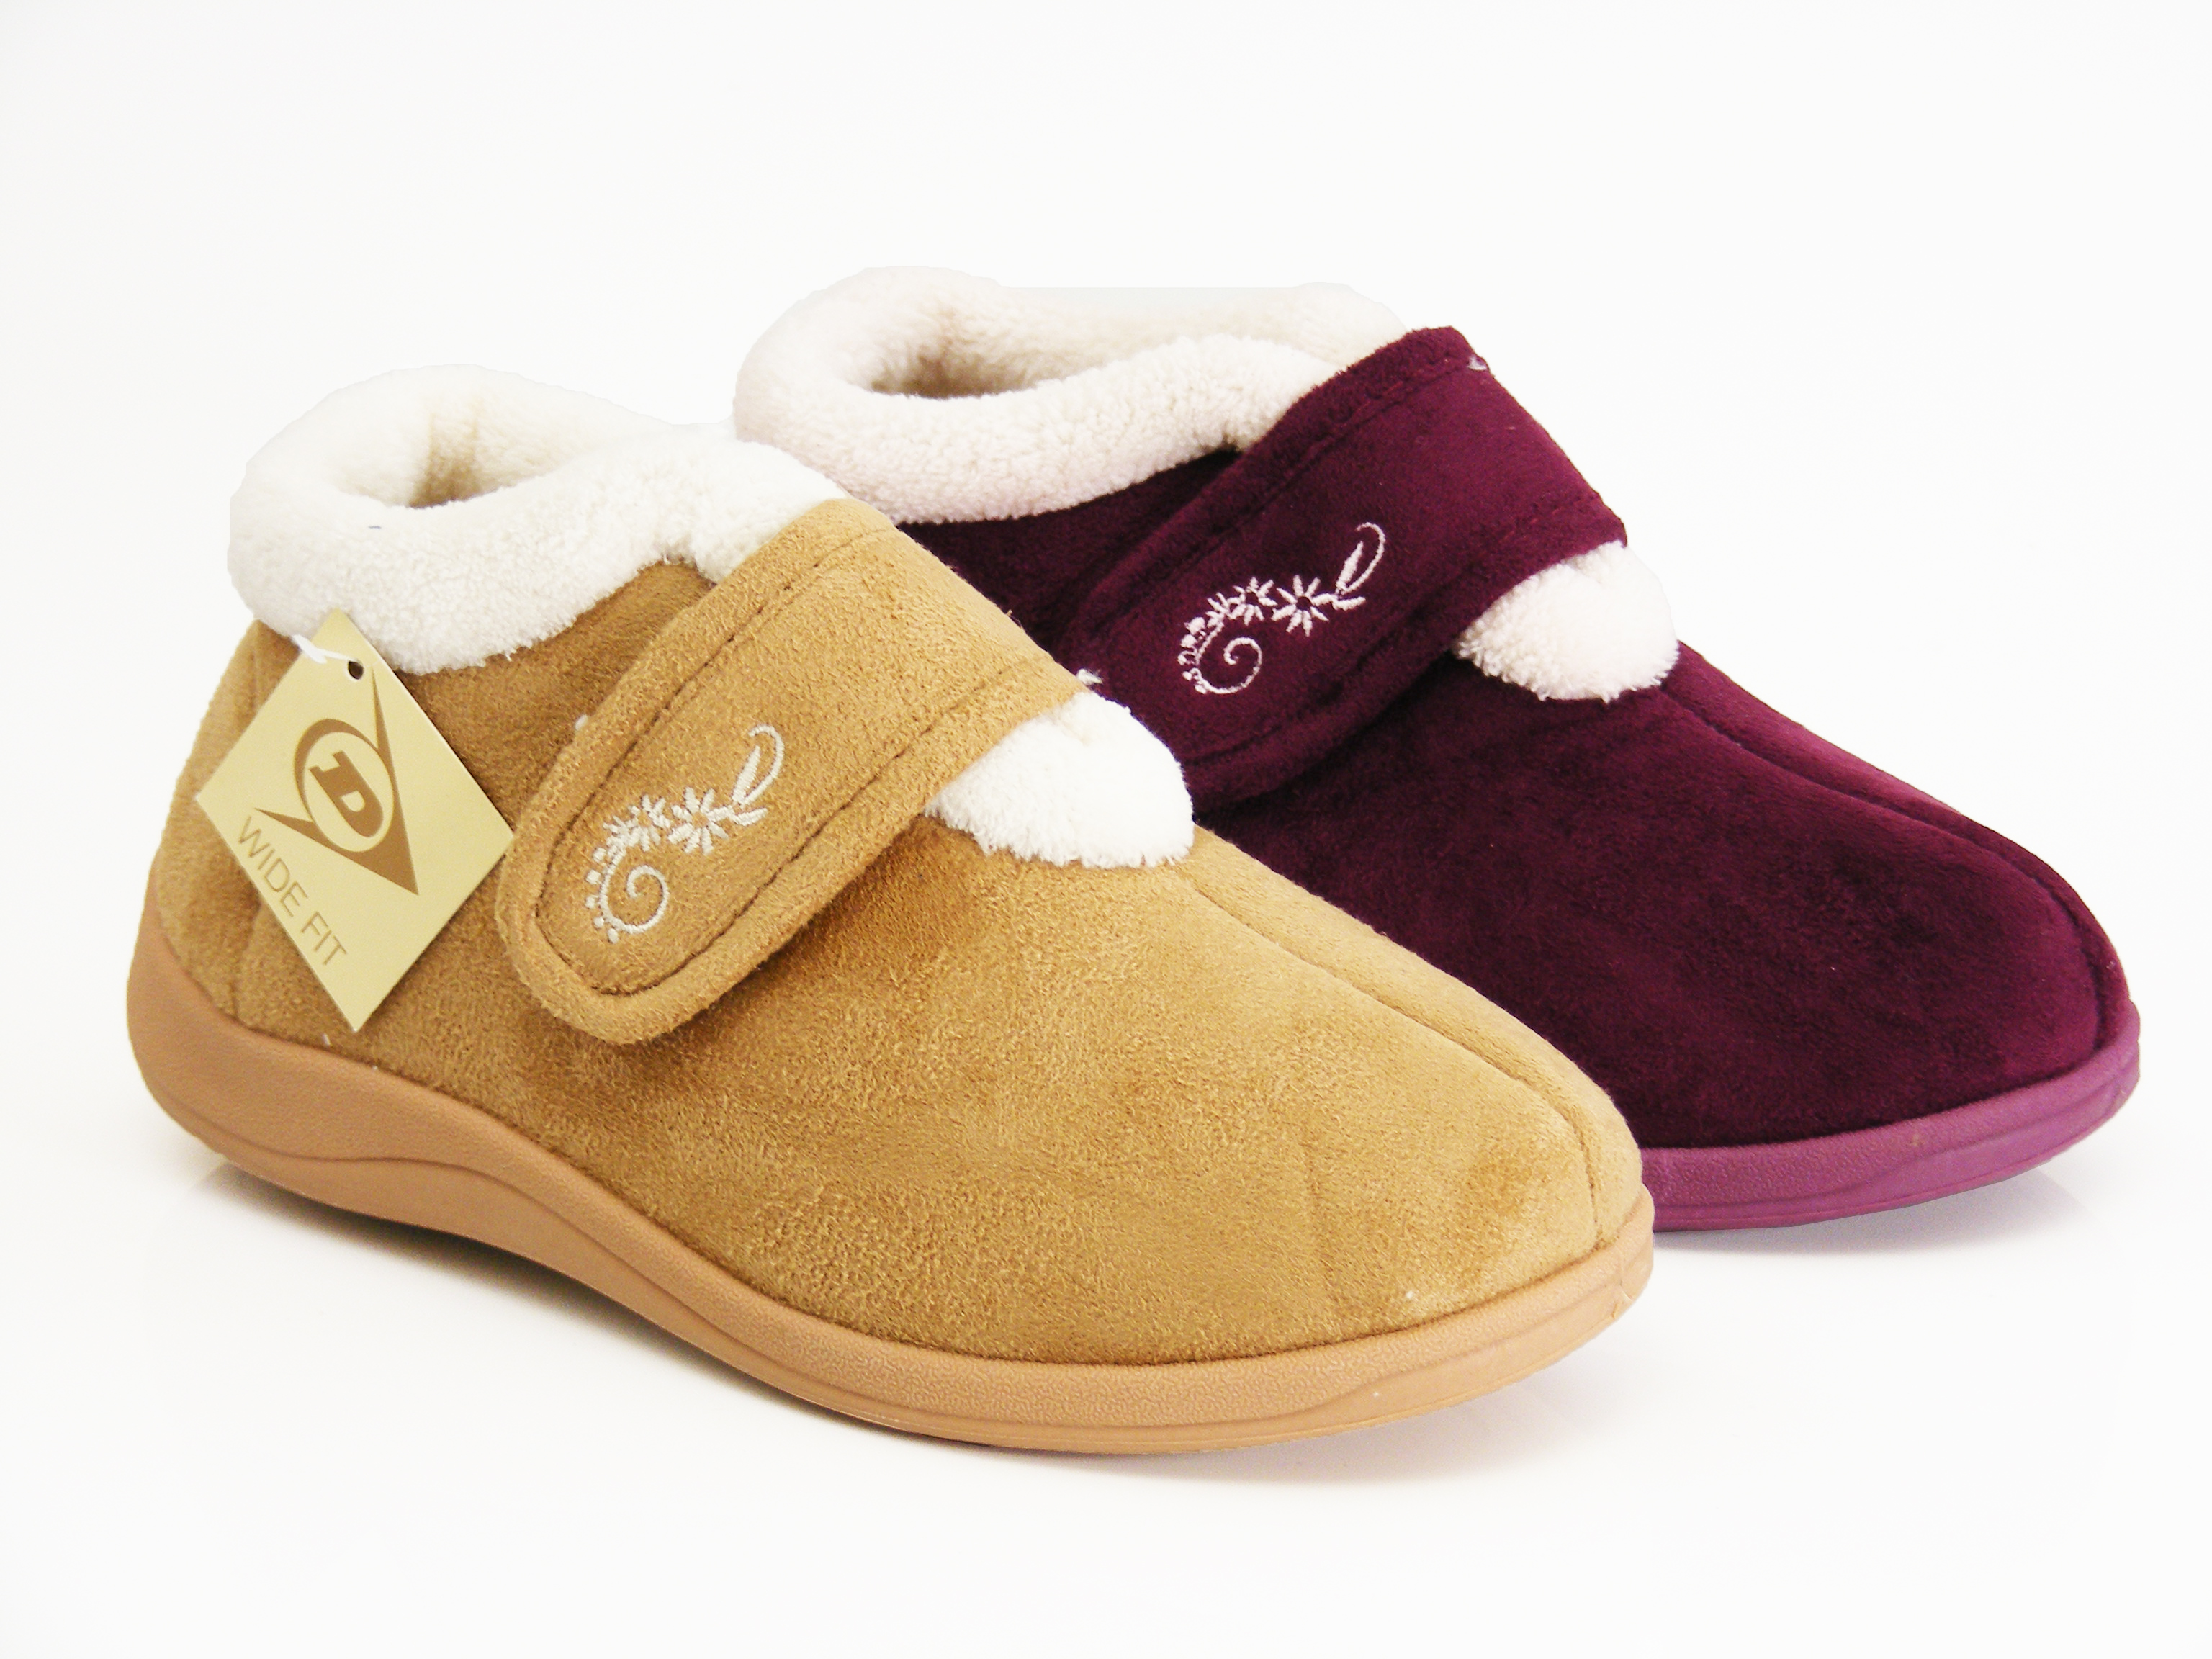 Sorel Women' Nakiska Slide Slipper is another good candidate for the best slippers for women. The suede leather felt, and wool is the materials used to manufacture these slippers. On winter days, Sorel Women's Nakiska slippers will provide maximum warmth and comfort to your feet.